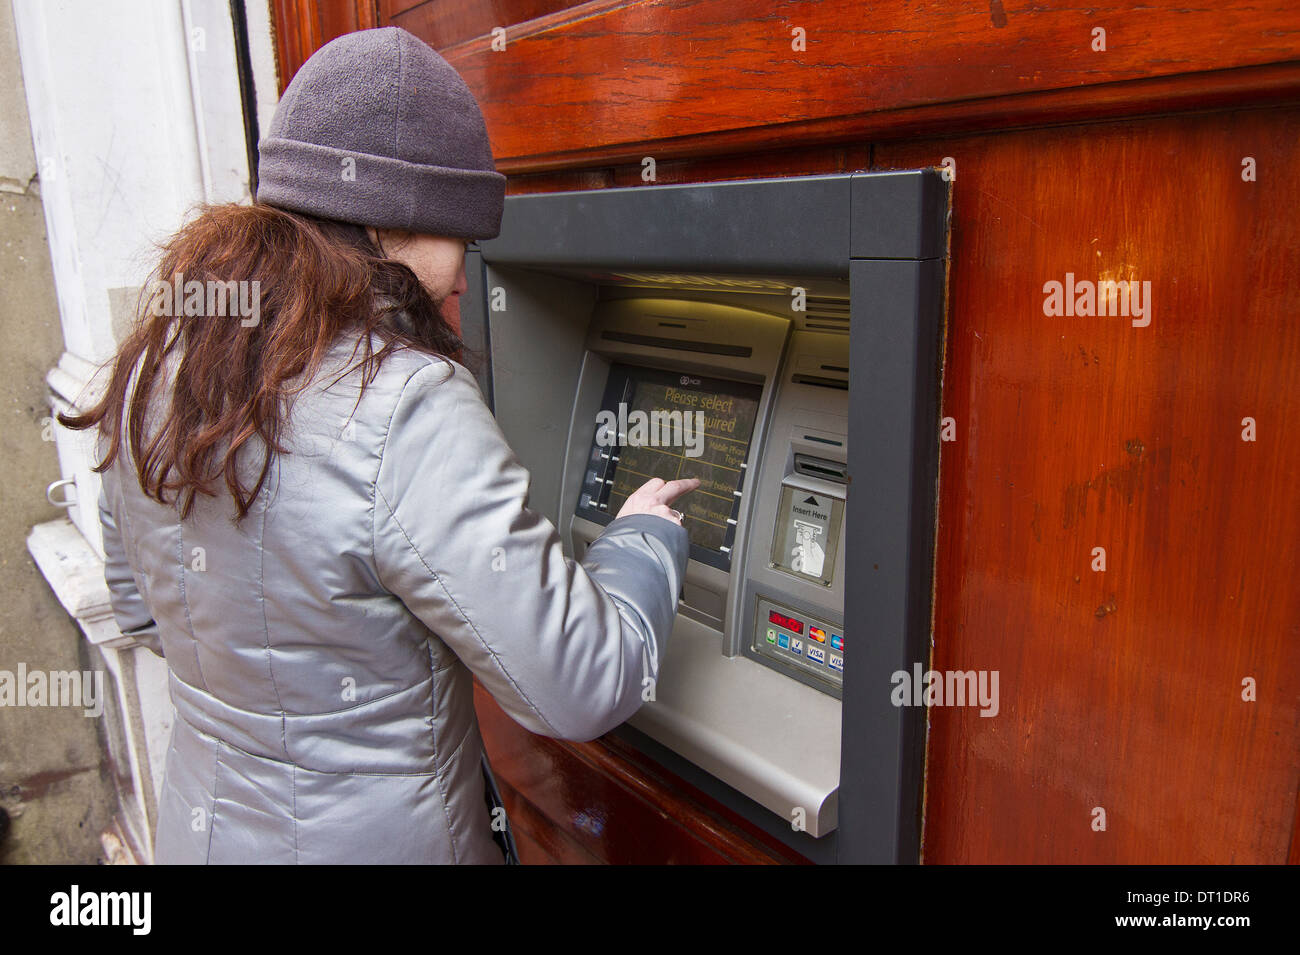 Woman using an ATM machine in Rochester Kent UK - Stock Image